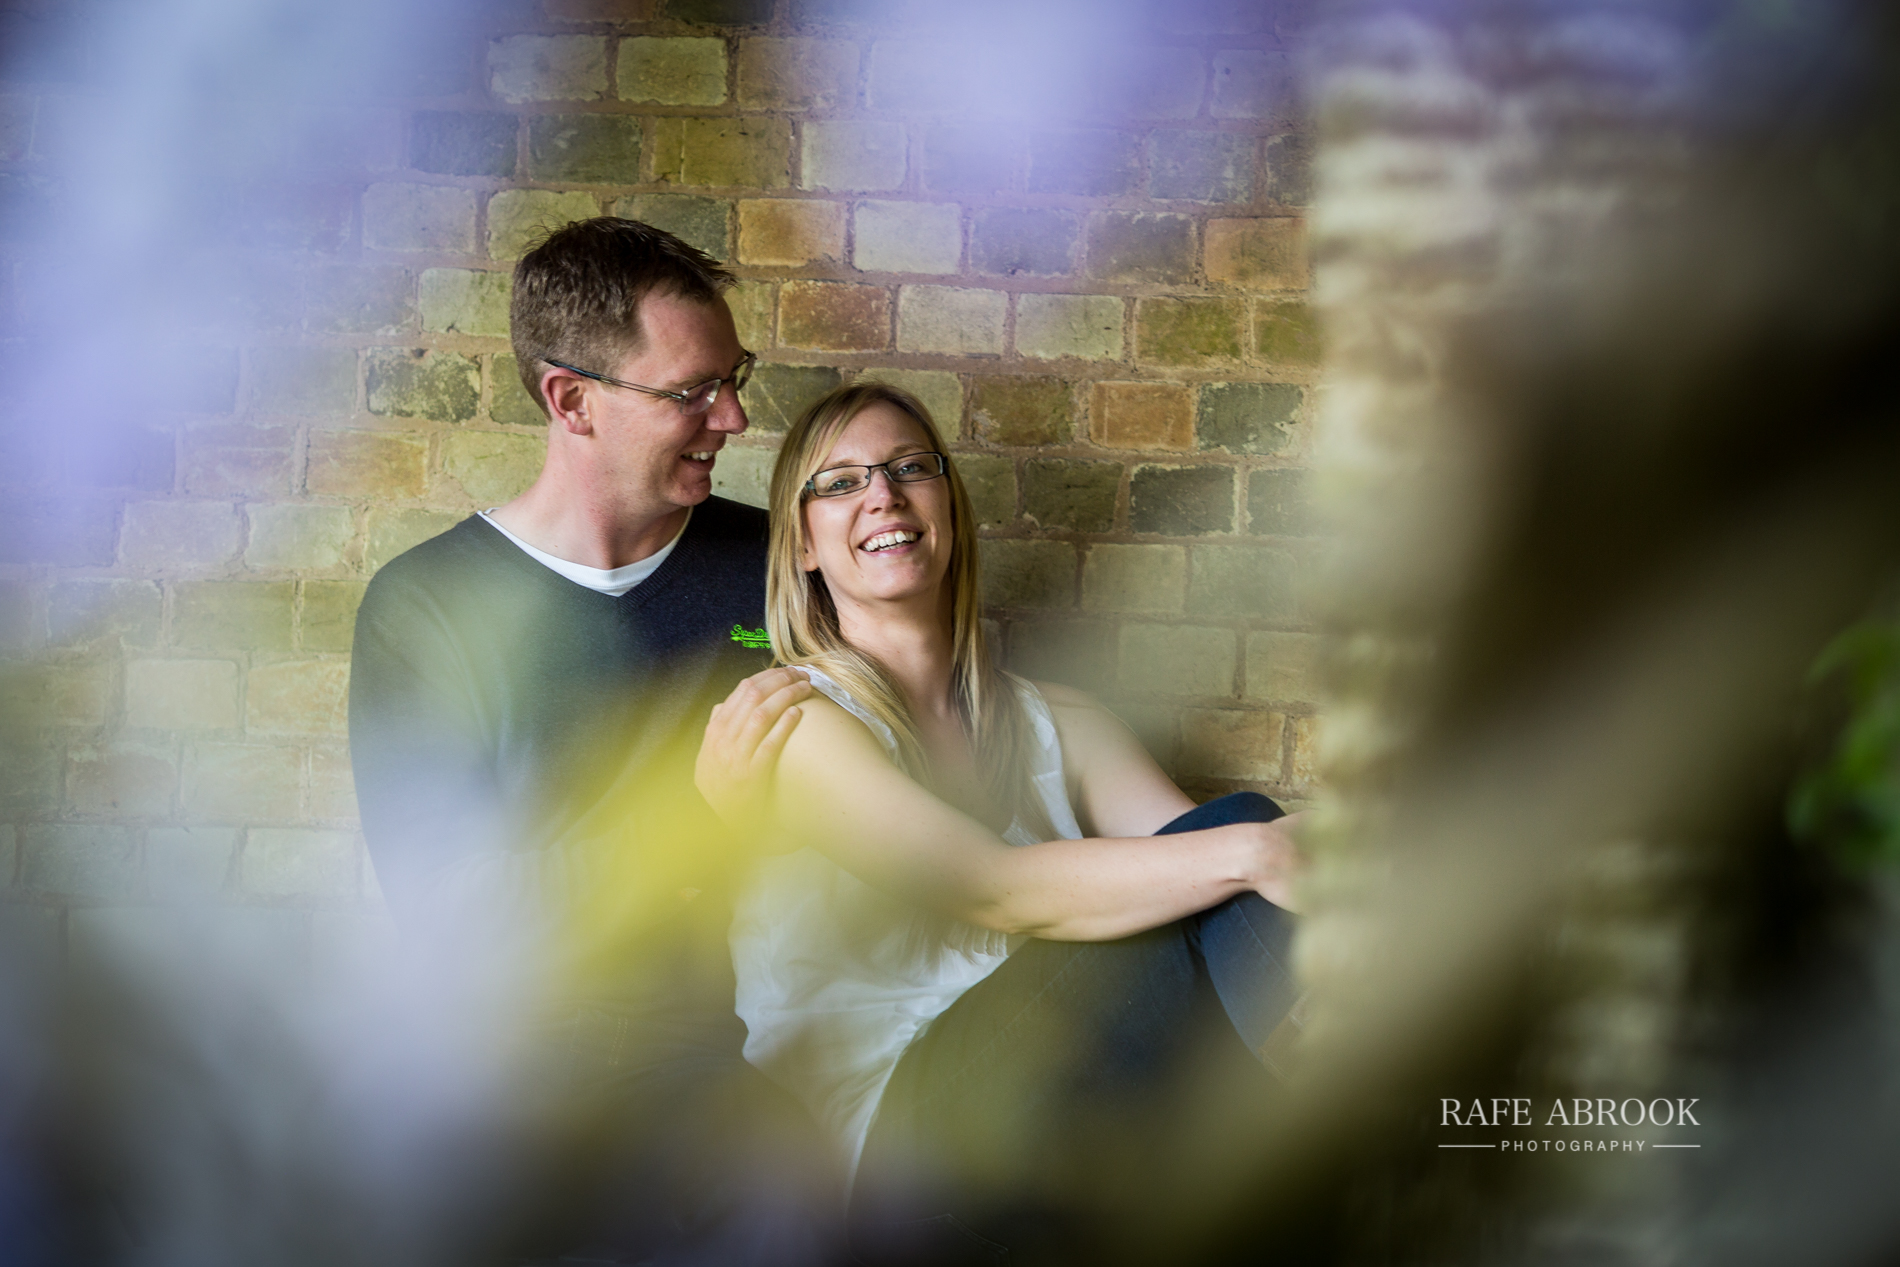 lorna & gary engagement shoot rspb sandy the lodge bedfordshire-1046.jpg